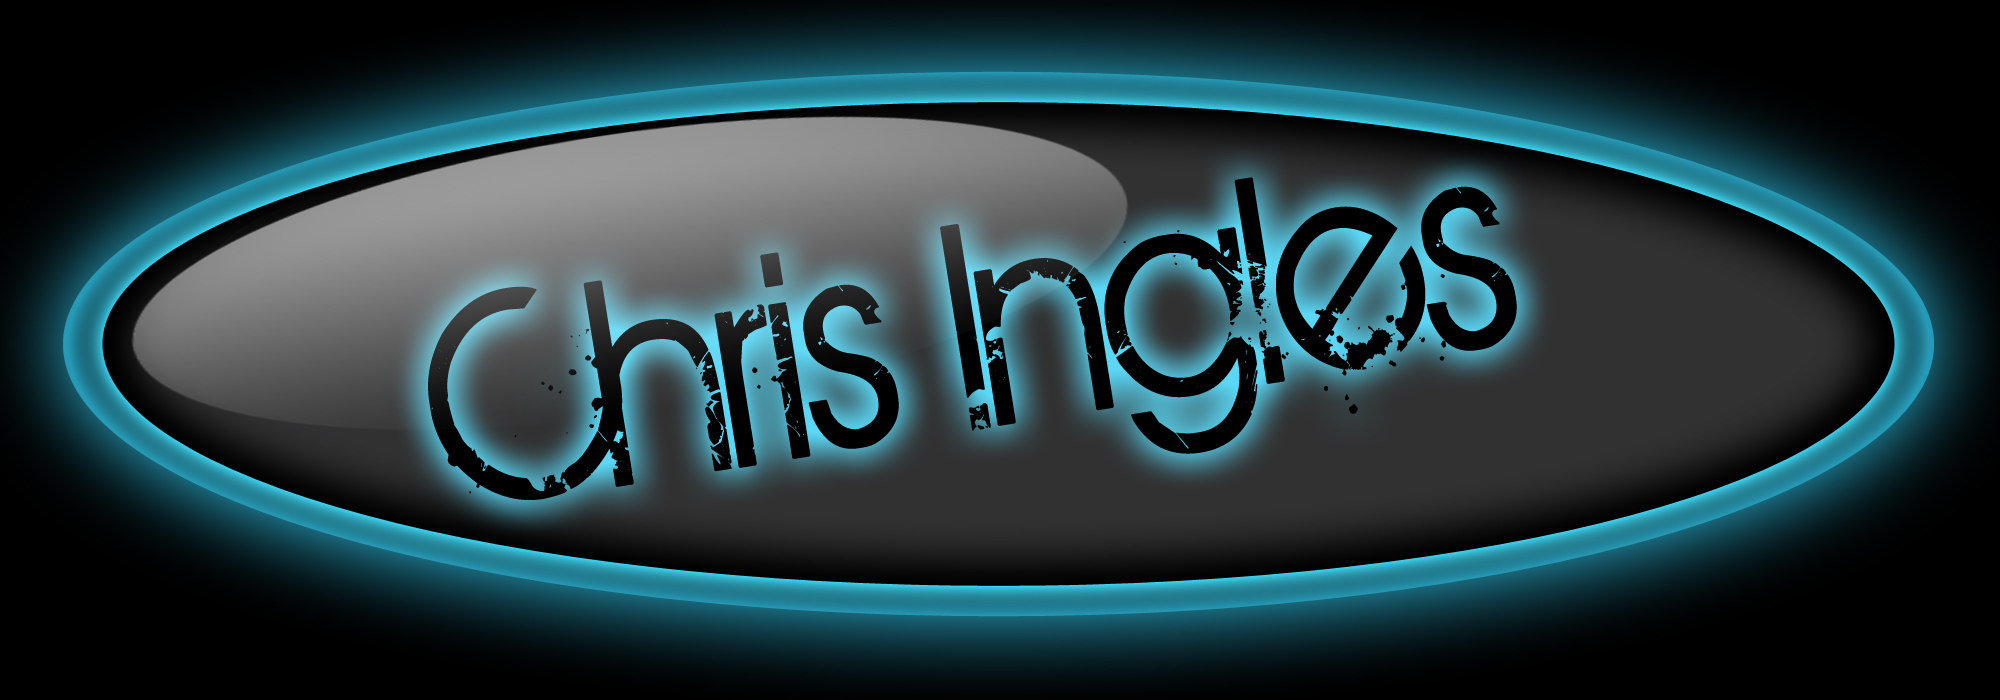 Chris Ingles